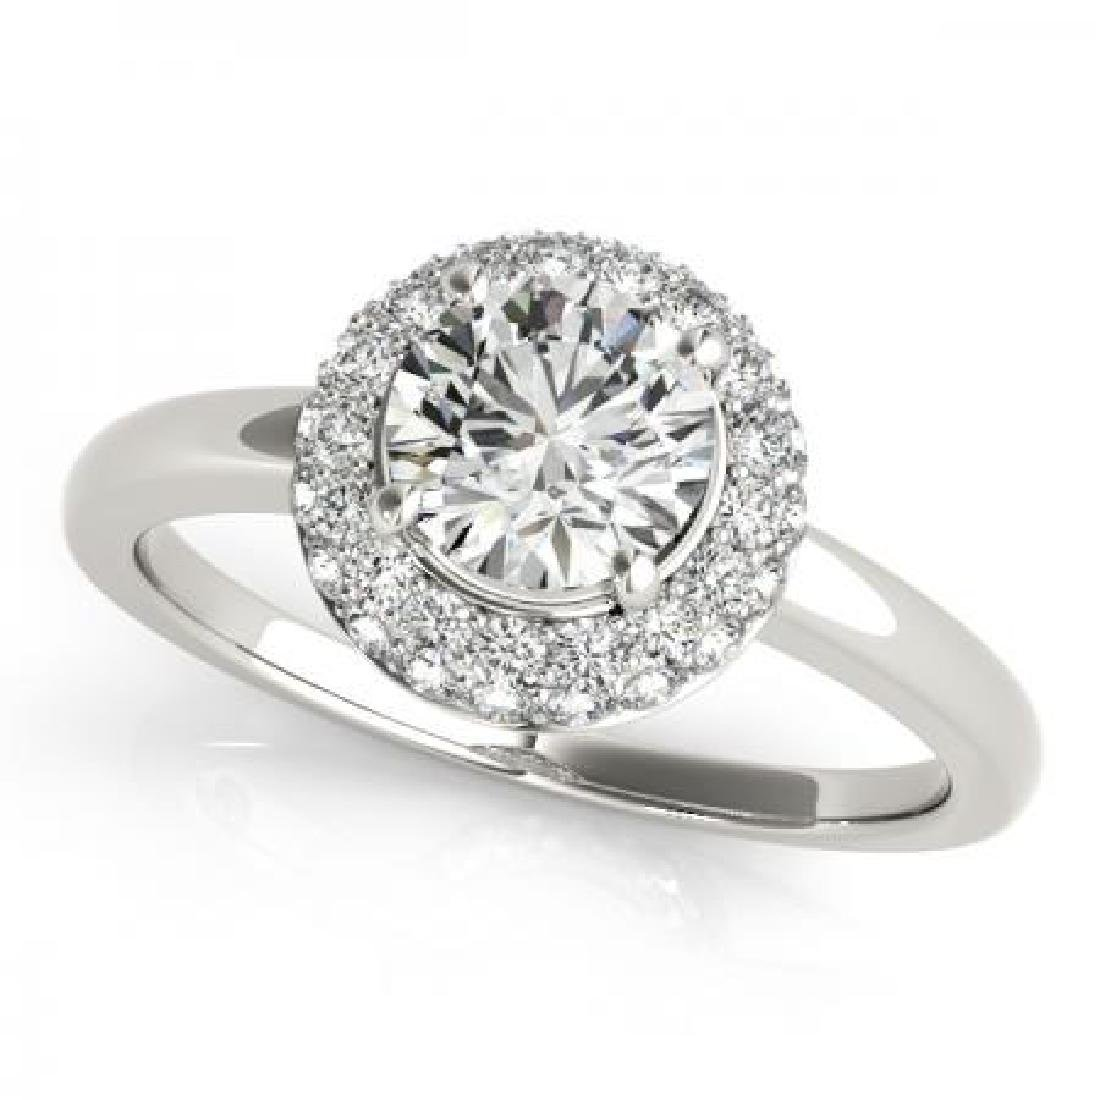 CERTIFIED PLATINUM 1.45 CT G-H/VS-SI1 DIAMOND HALO ENGA